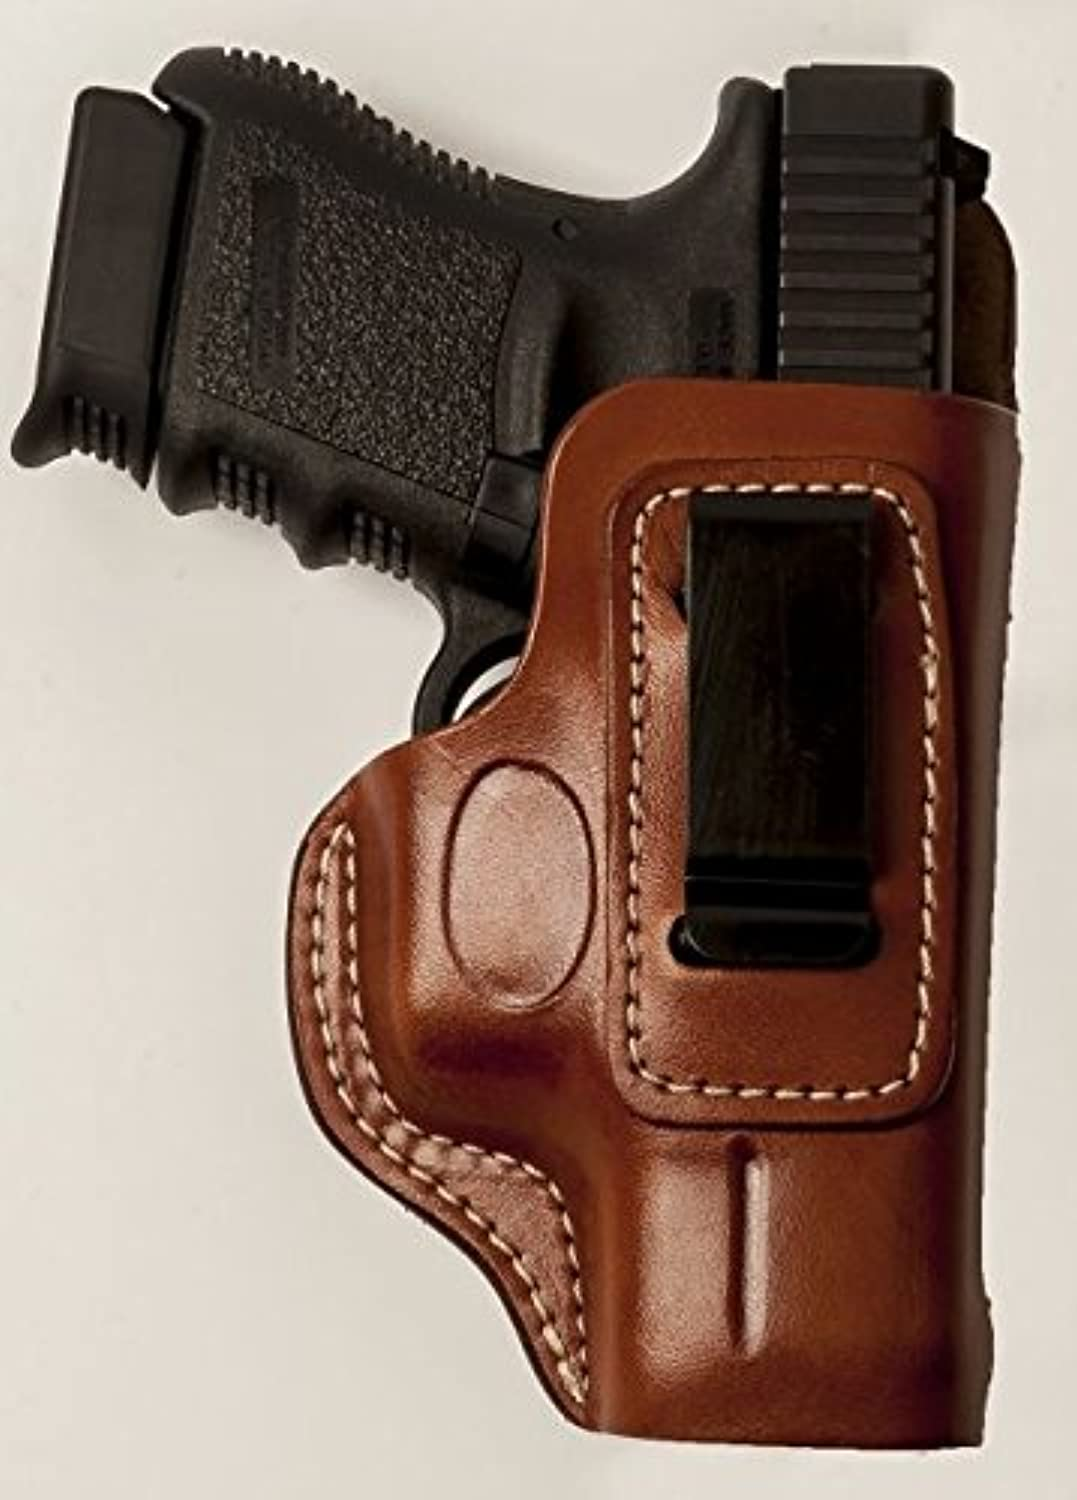 Cebeci 20797RT04 RightHand Leather IWB Comfort Tab 20797 Holster Gun Belt, Tan, 4.5